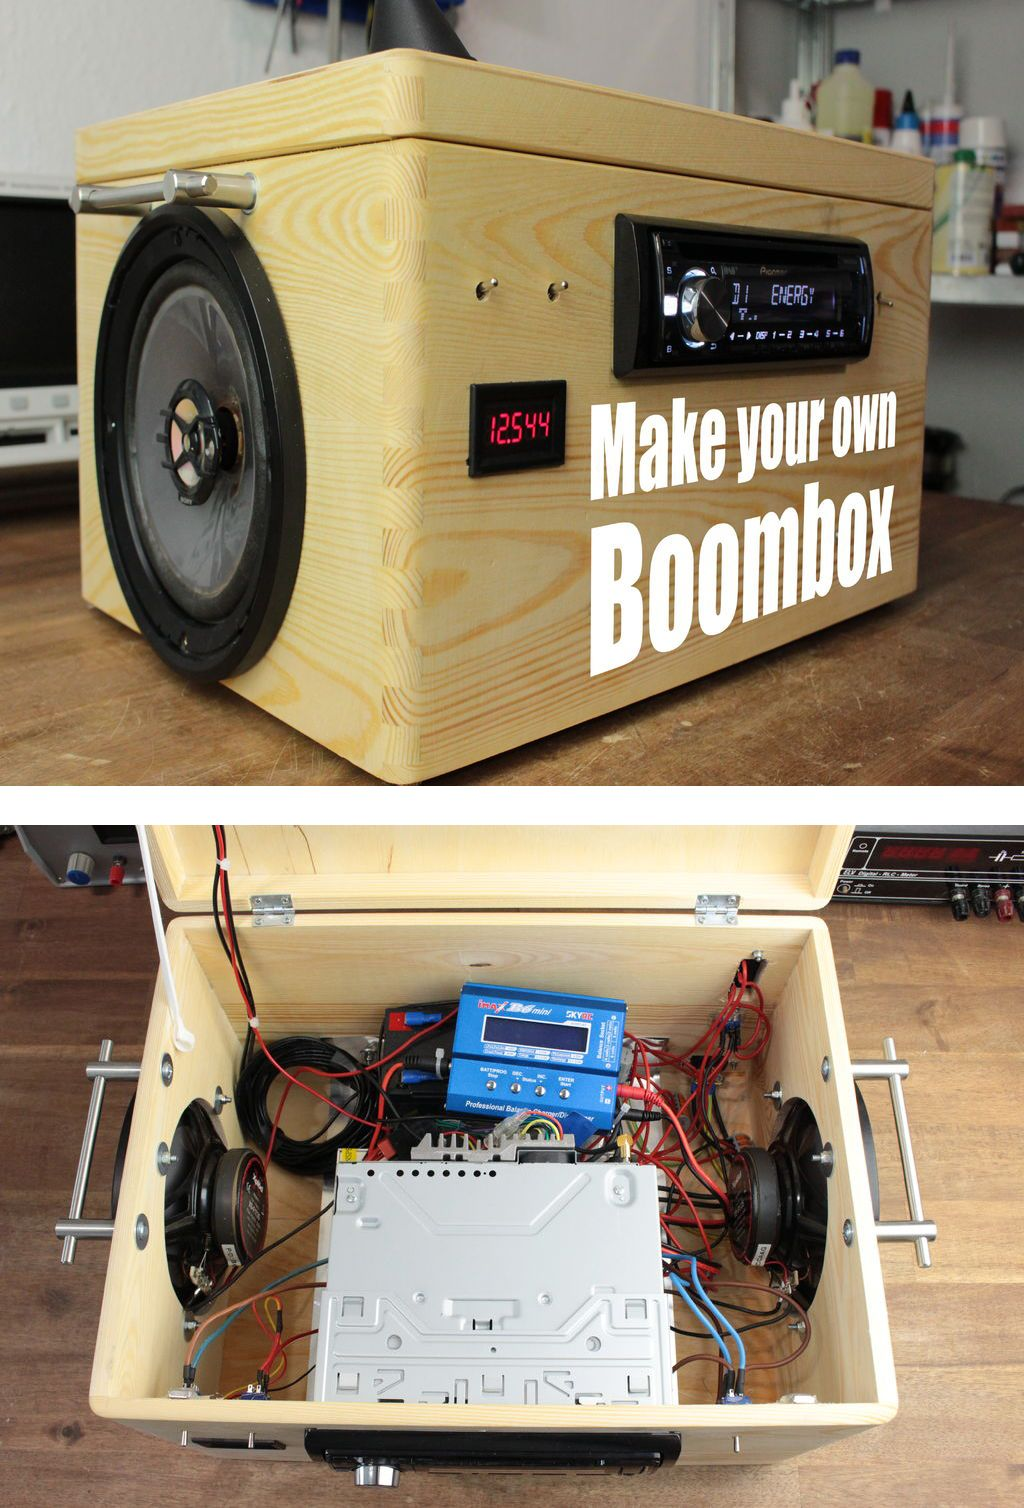 Bierkasten Clipart Make Your Own Boombox Electronics Projects Pinterest Diy